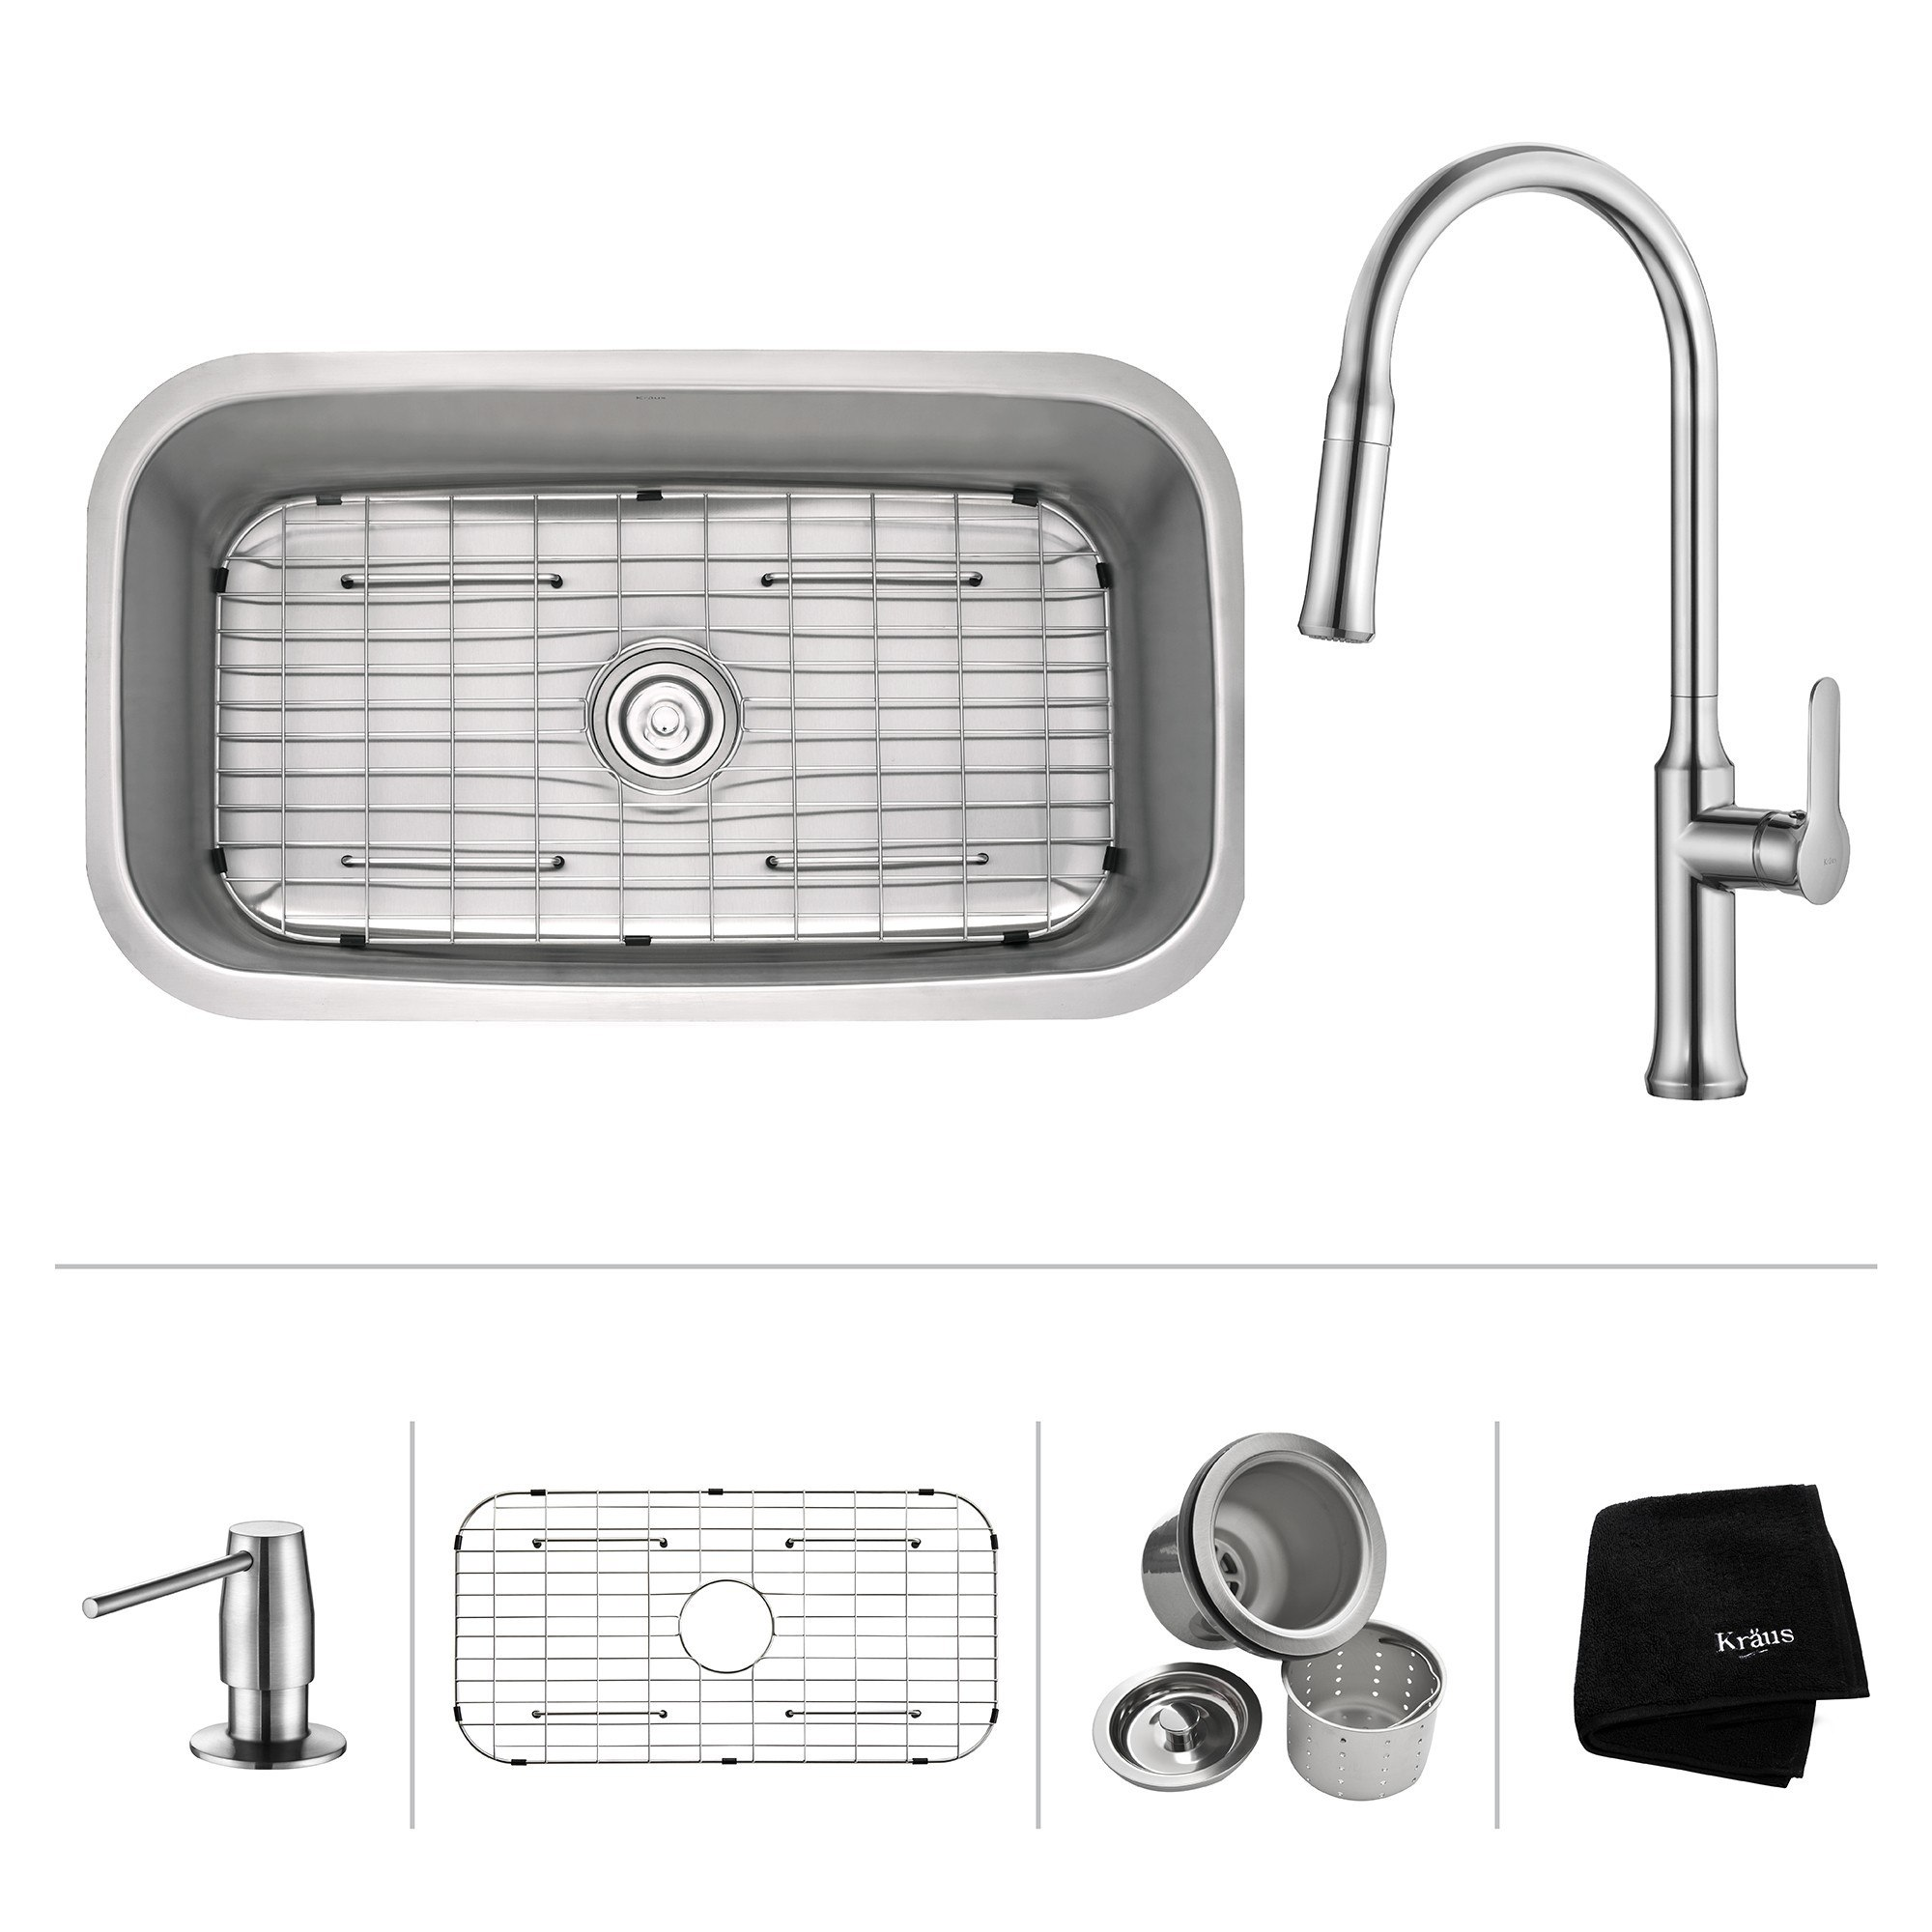 Kraus KBU14-1630-42 Nola 31-1/2 Inch Undermount Single Bowl Stainless Steel Sink with Pull Down Faucet & Soap Dispenser